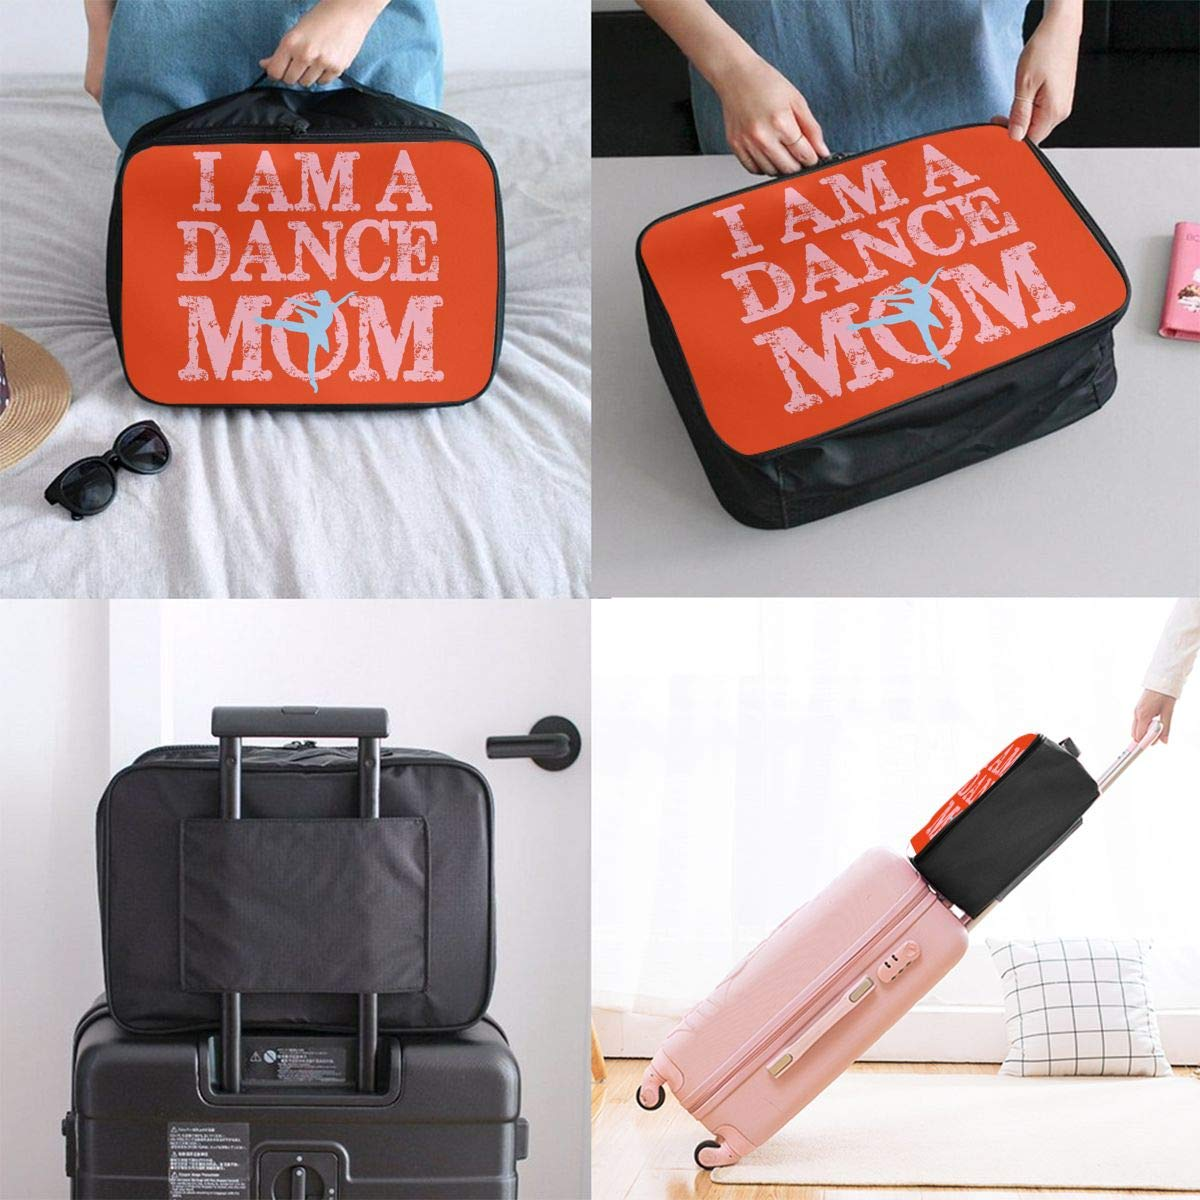 Travel Luggage Duffle Bag Lightweight Portable Handbag Dance Mom Large Capacity Waterproof Foldable Storage Tote